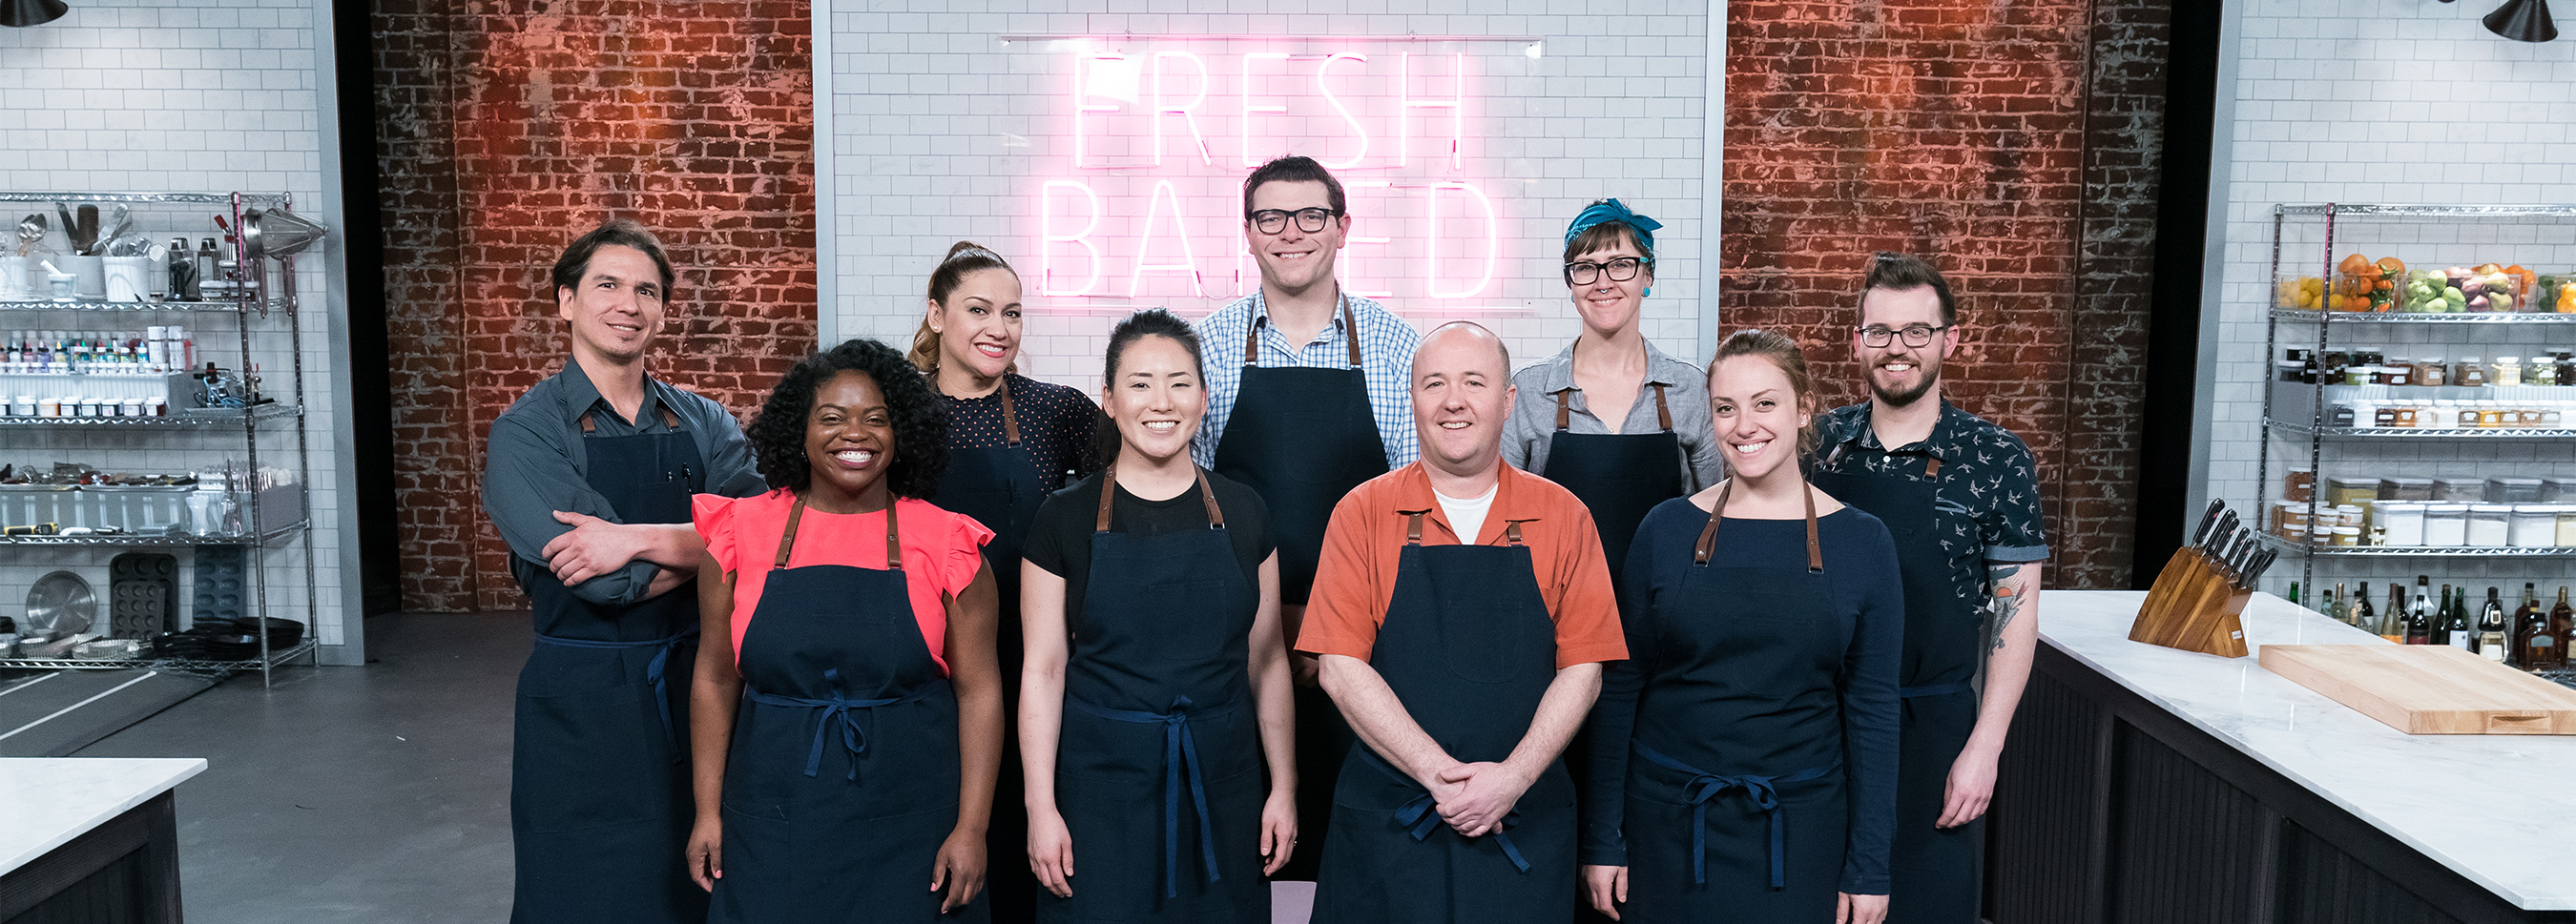 The contestants of Food Network's Best Baker in America standing in kitchen